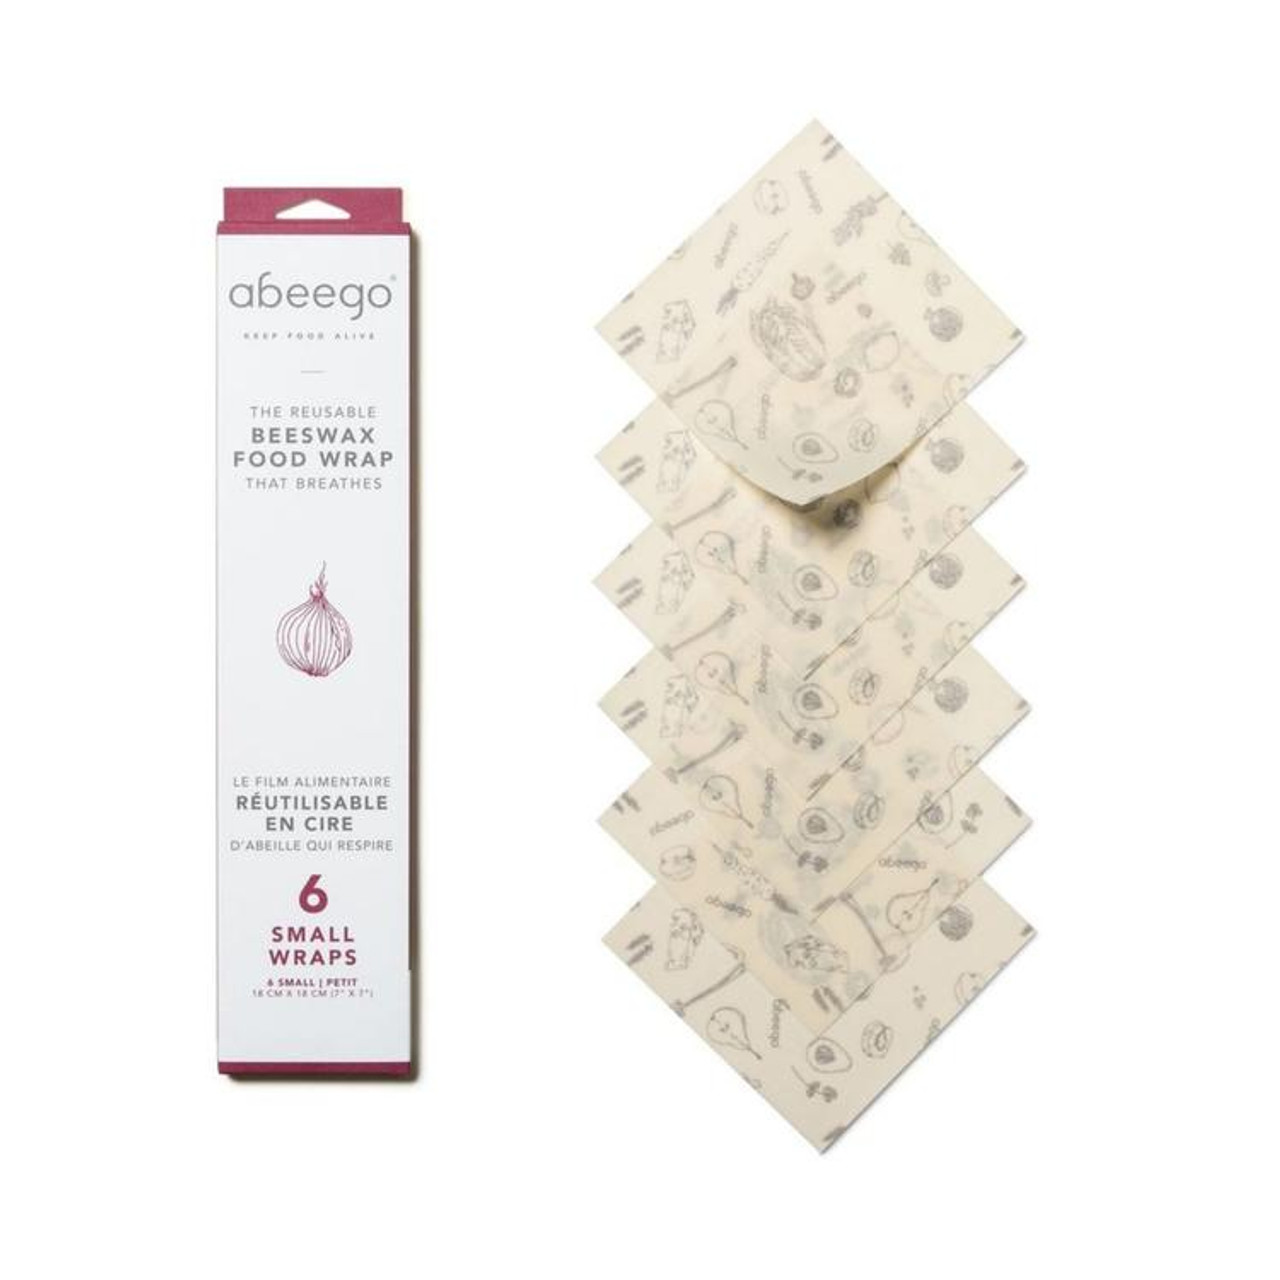 Abeego Beeswax Wrap